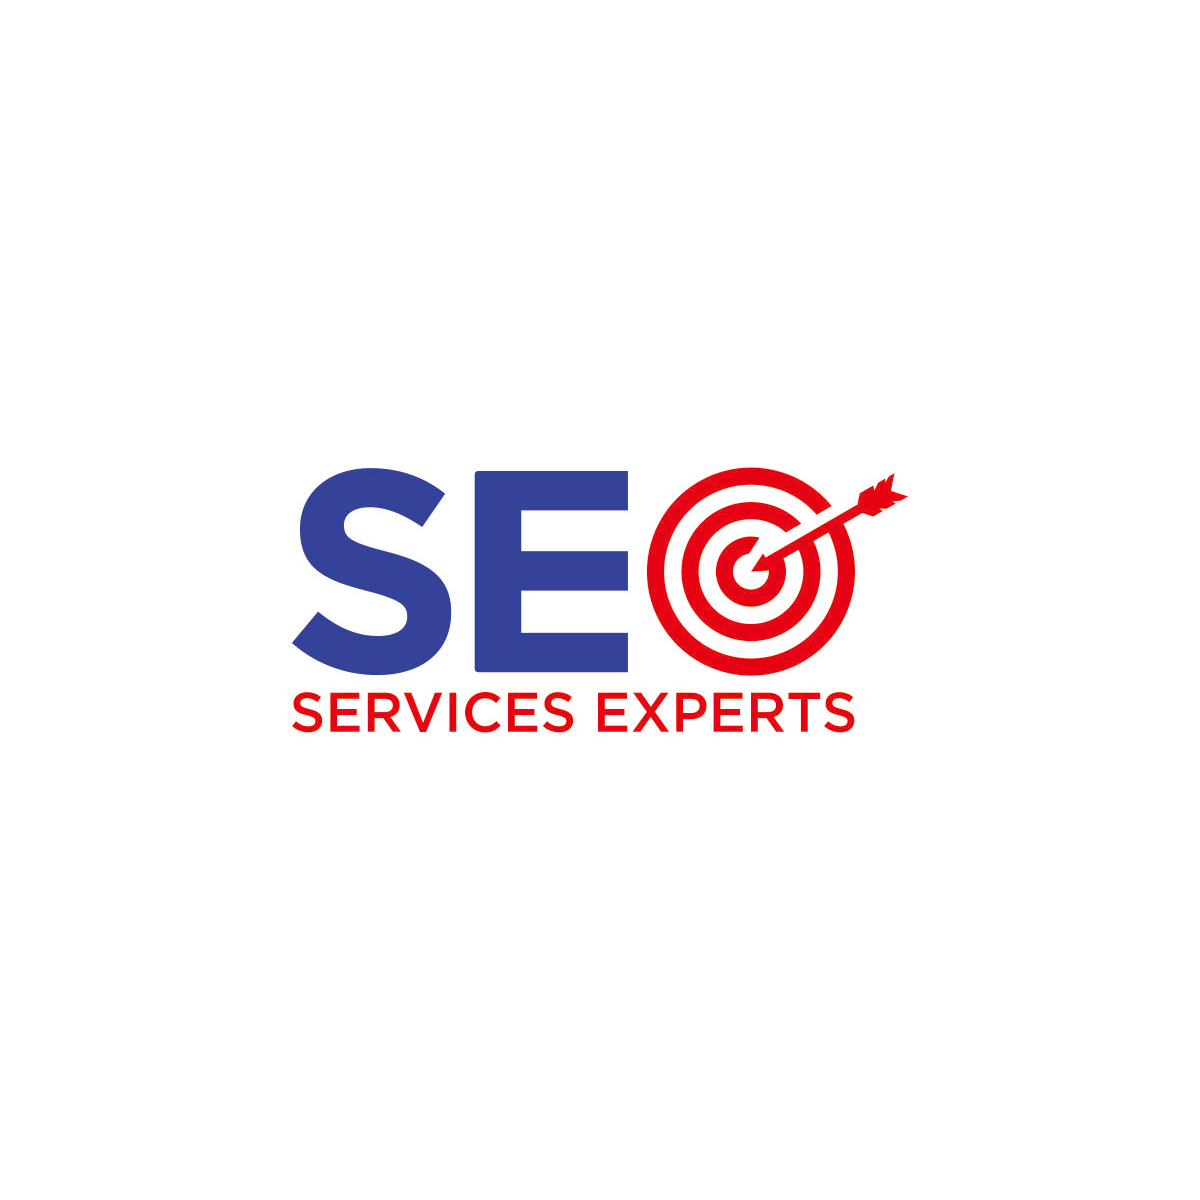 Seo Services Experts